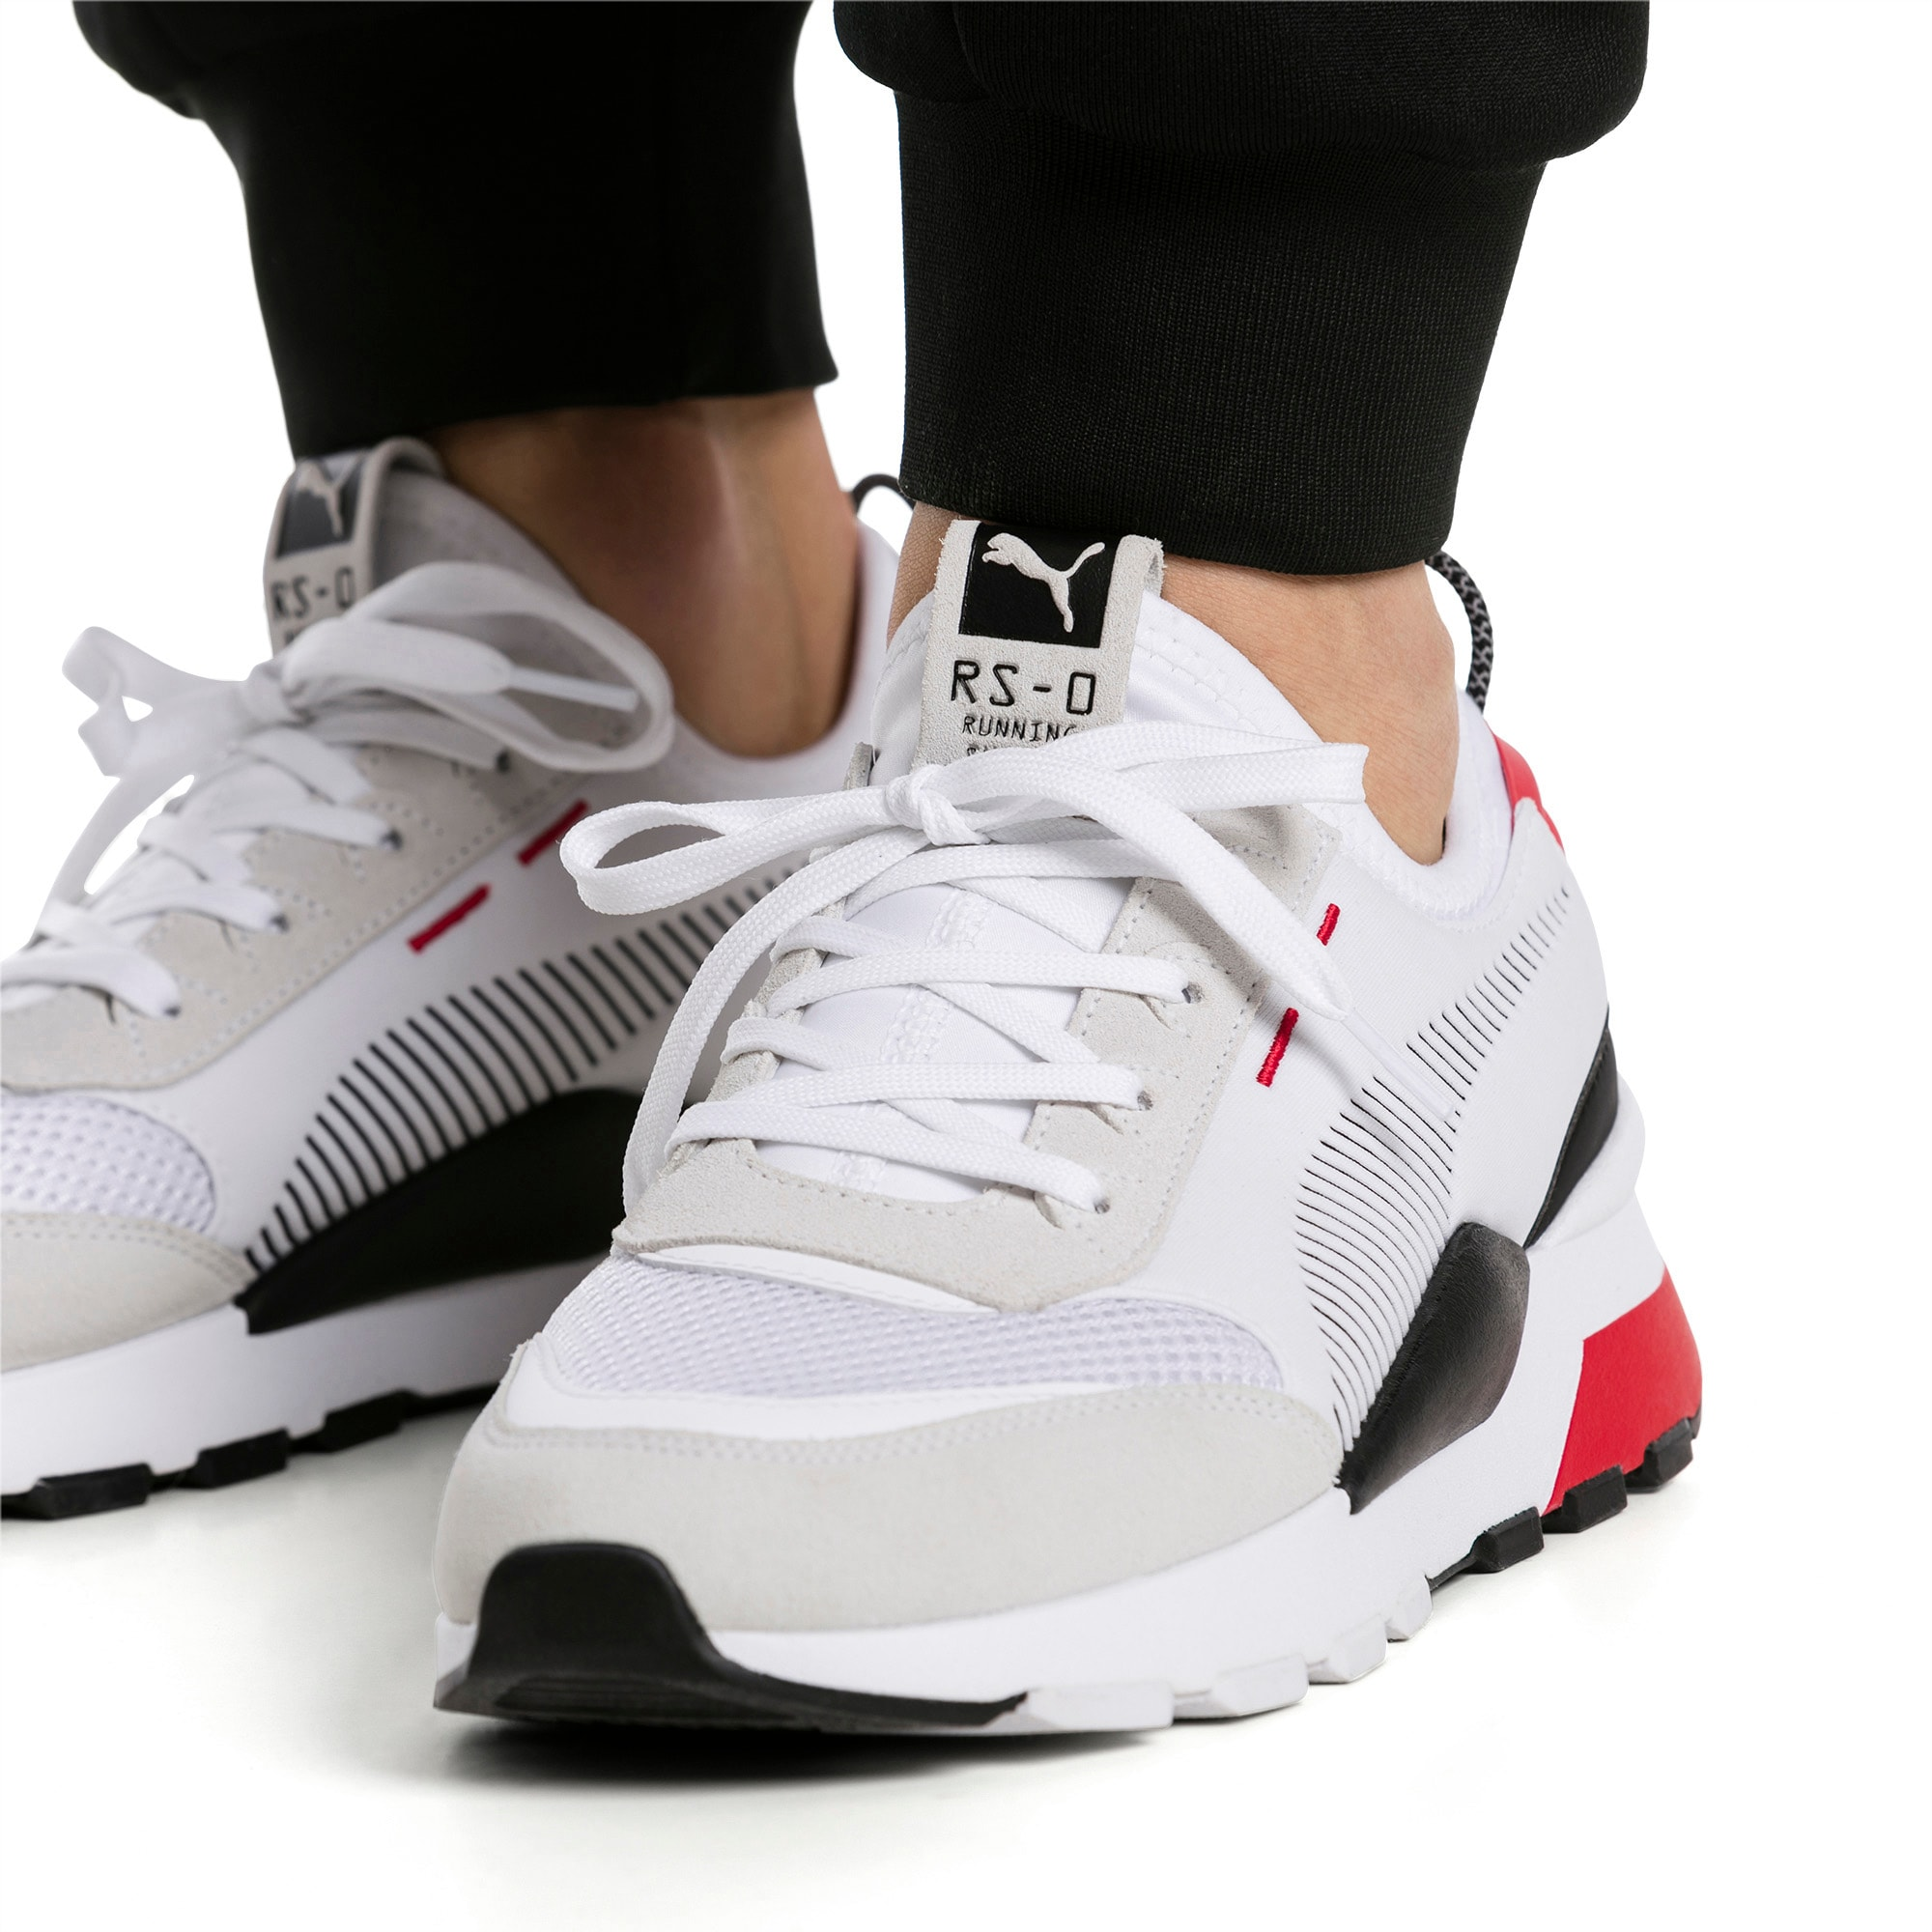 Puma RS 0 Winter Inj Toys Sneakers